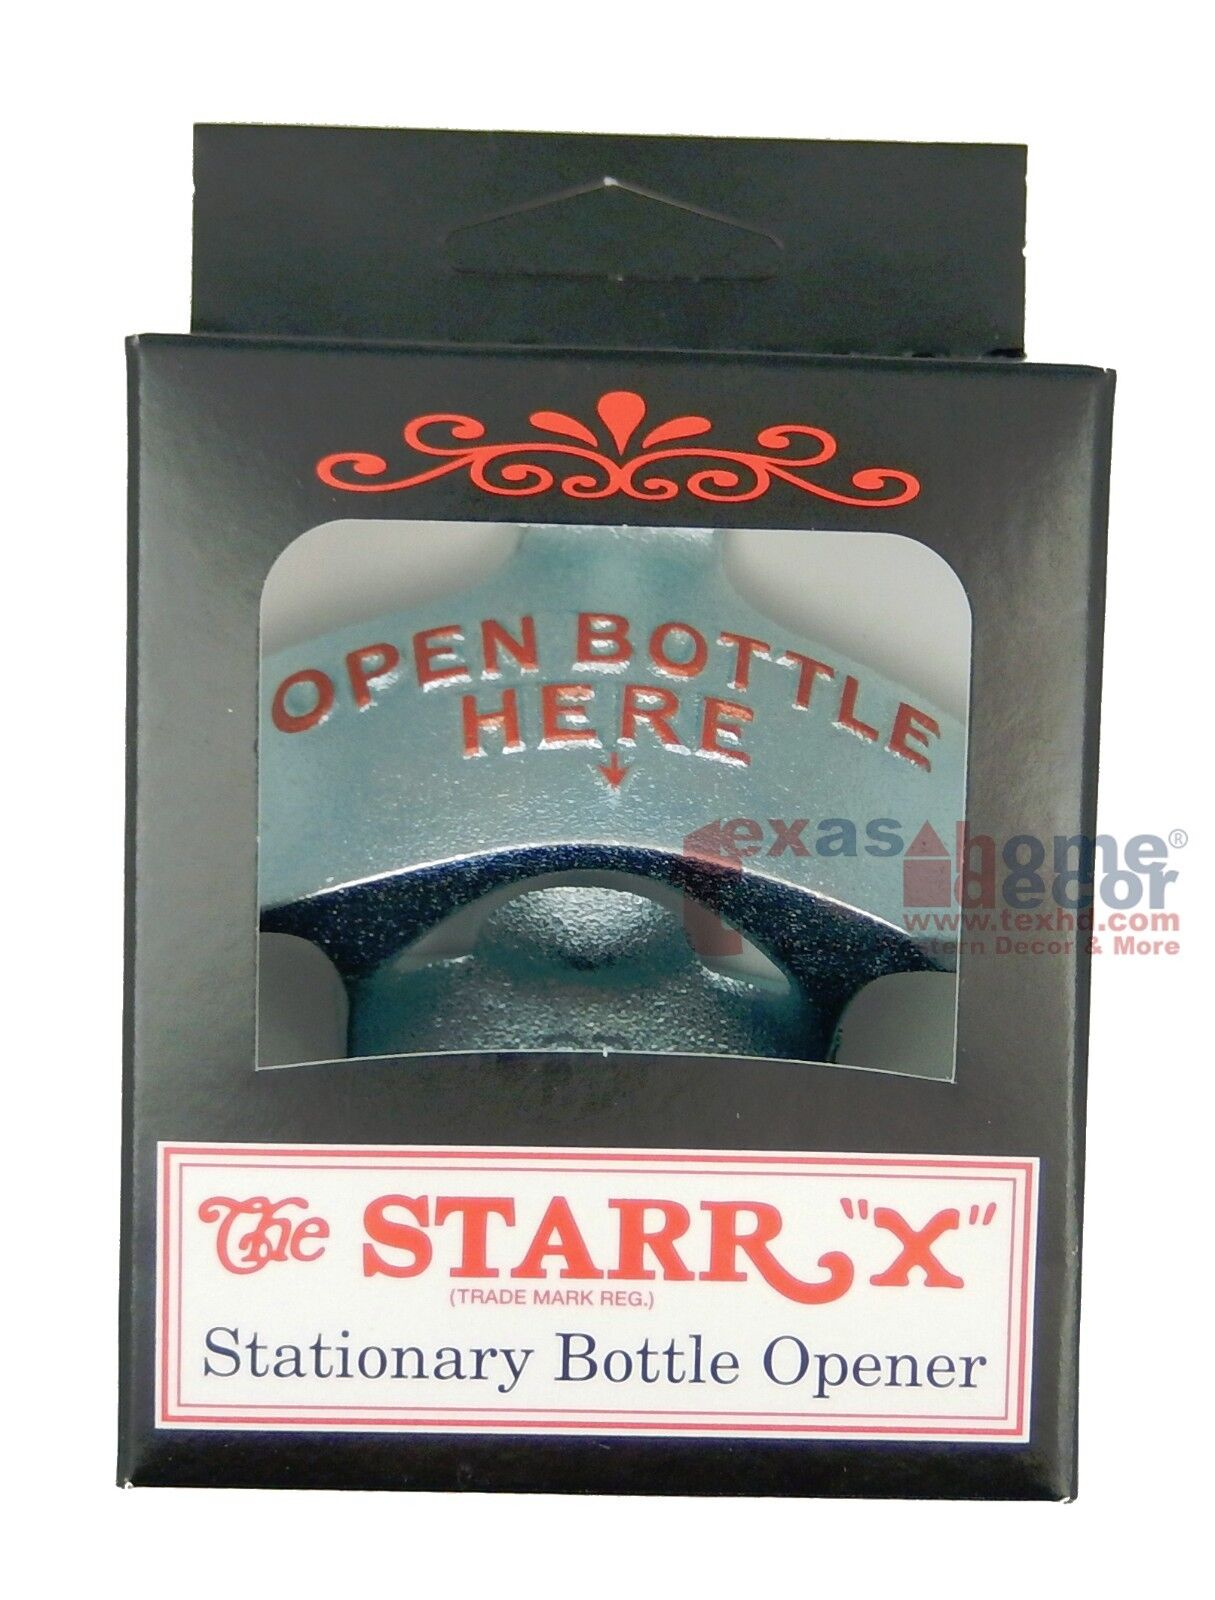 Wall Mounted OPEN BOTTLE HERE Beer Bottle Opener Starr X Sturdy Cast Iron Silver